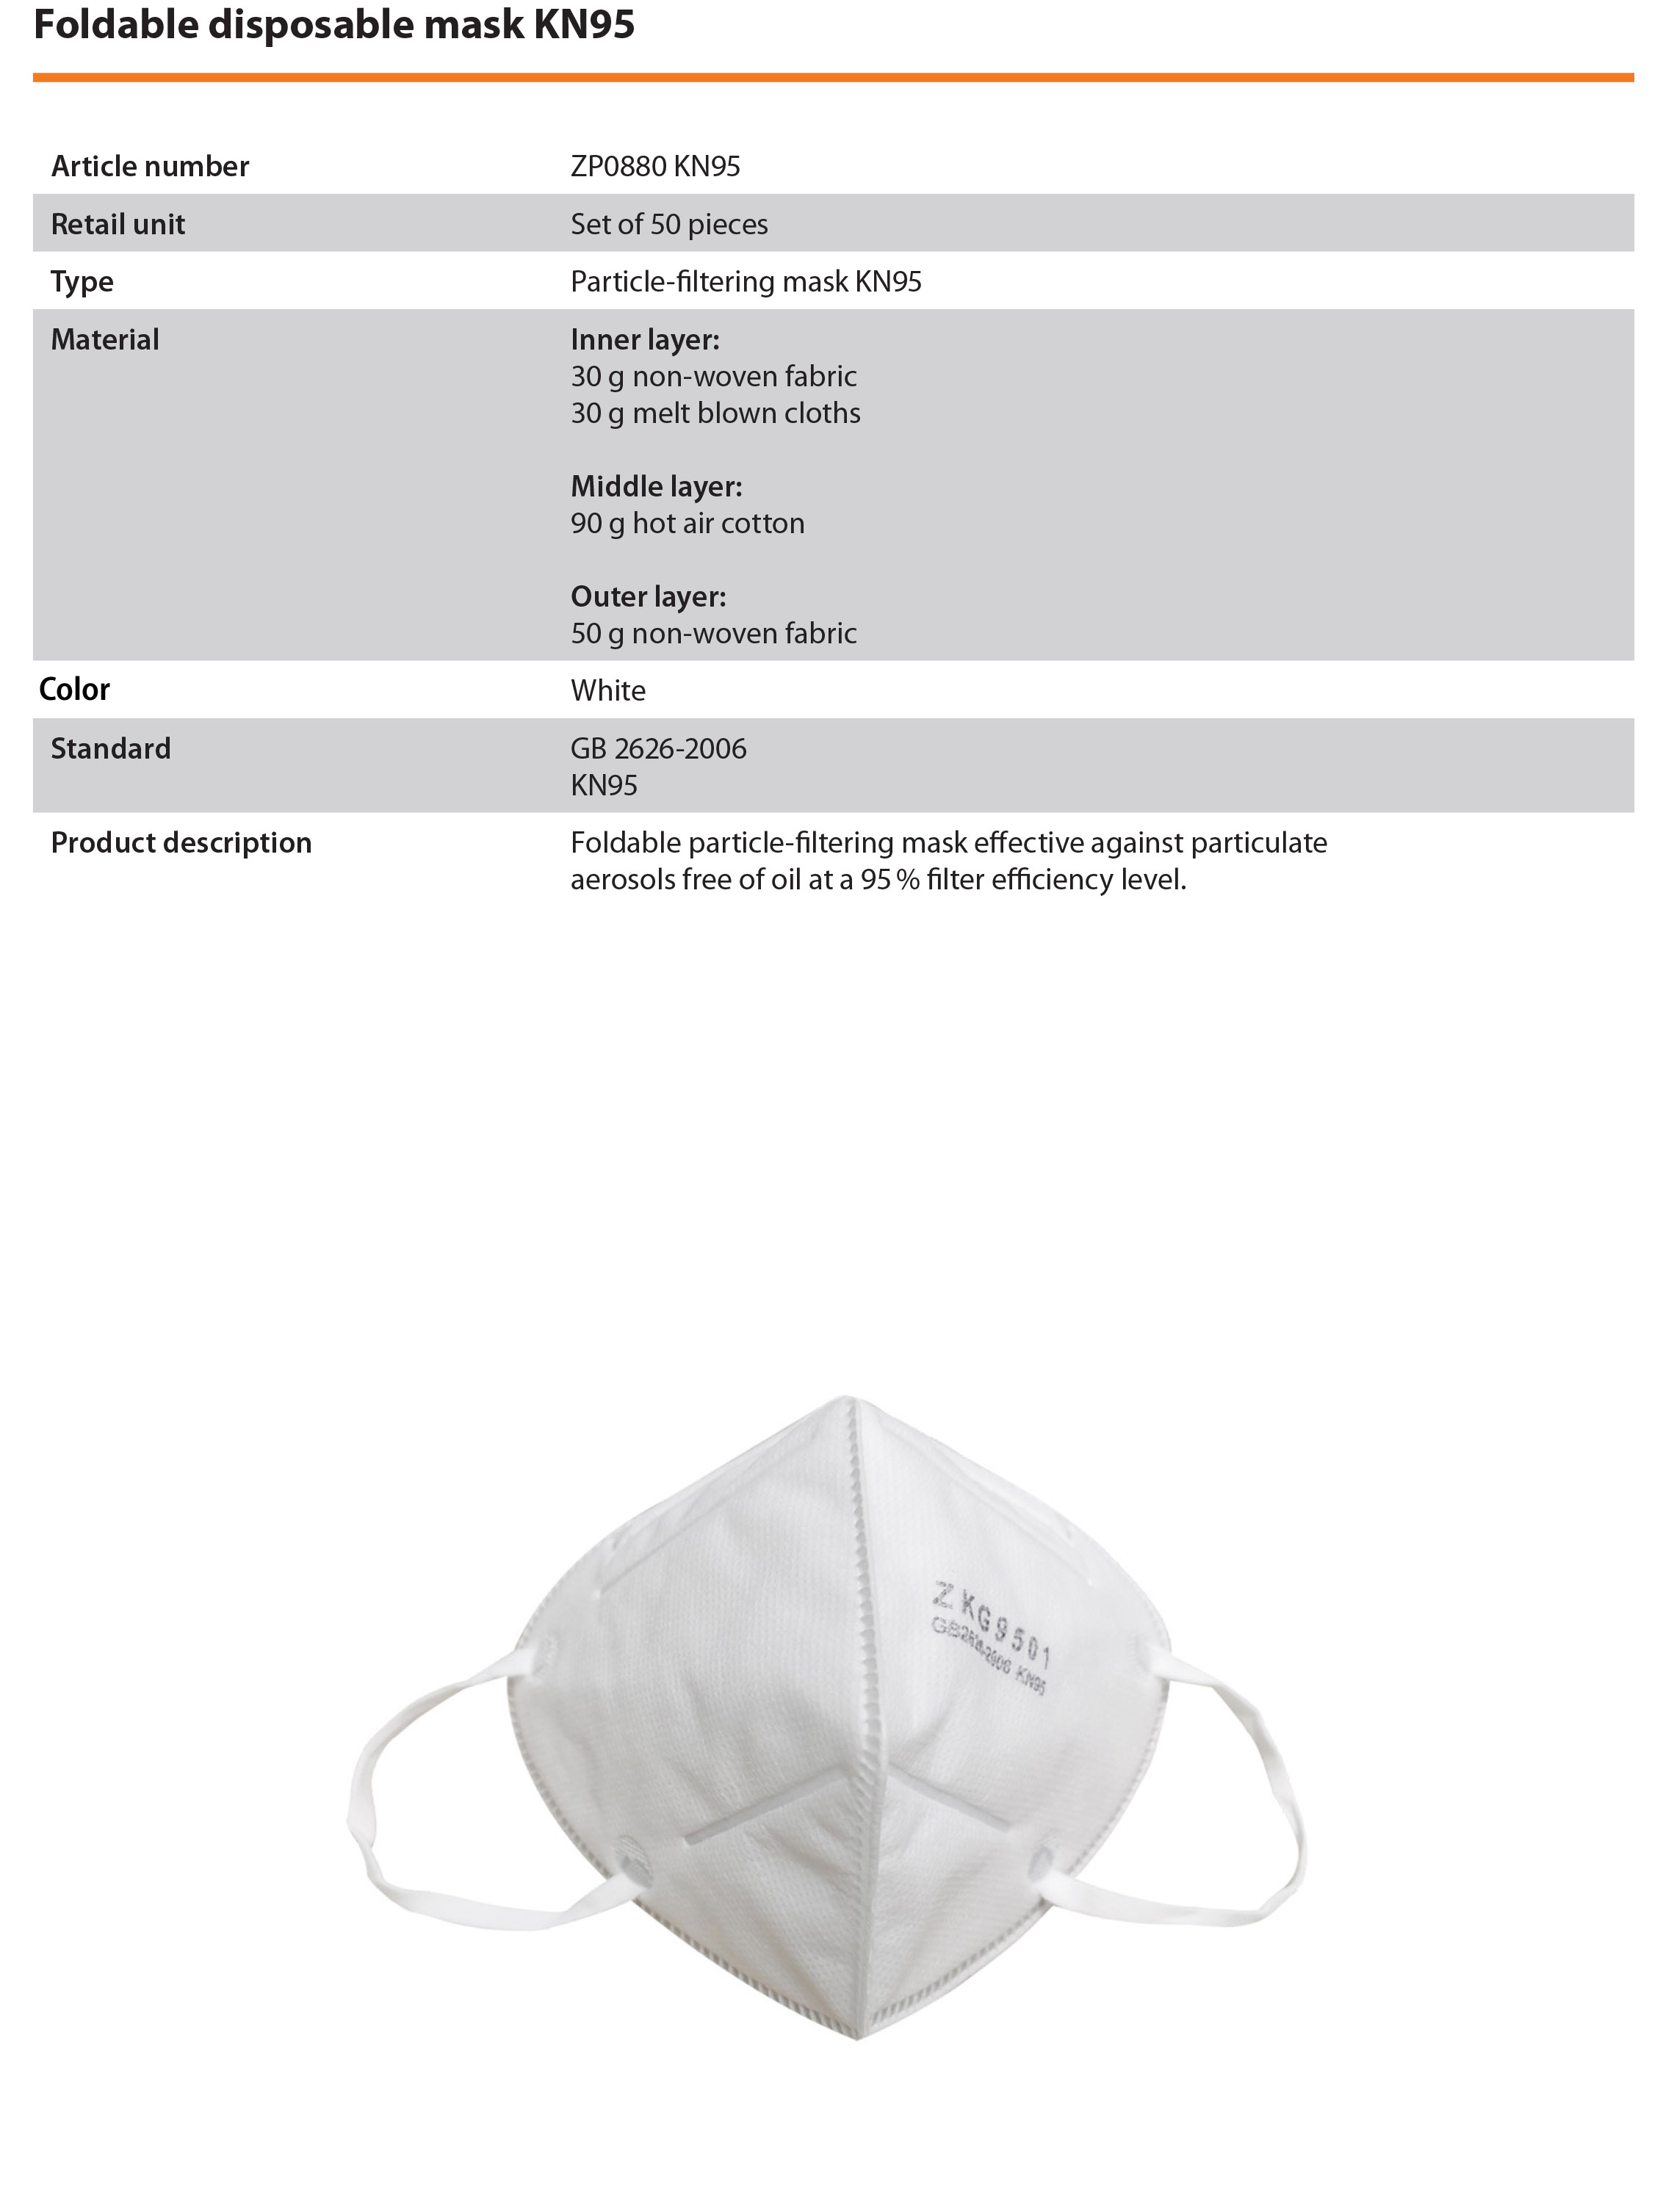 Hoffmann Group USA PPE: 50 pack of KN95 Respiratory Masks In Stock